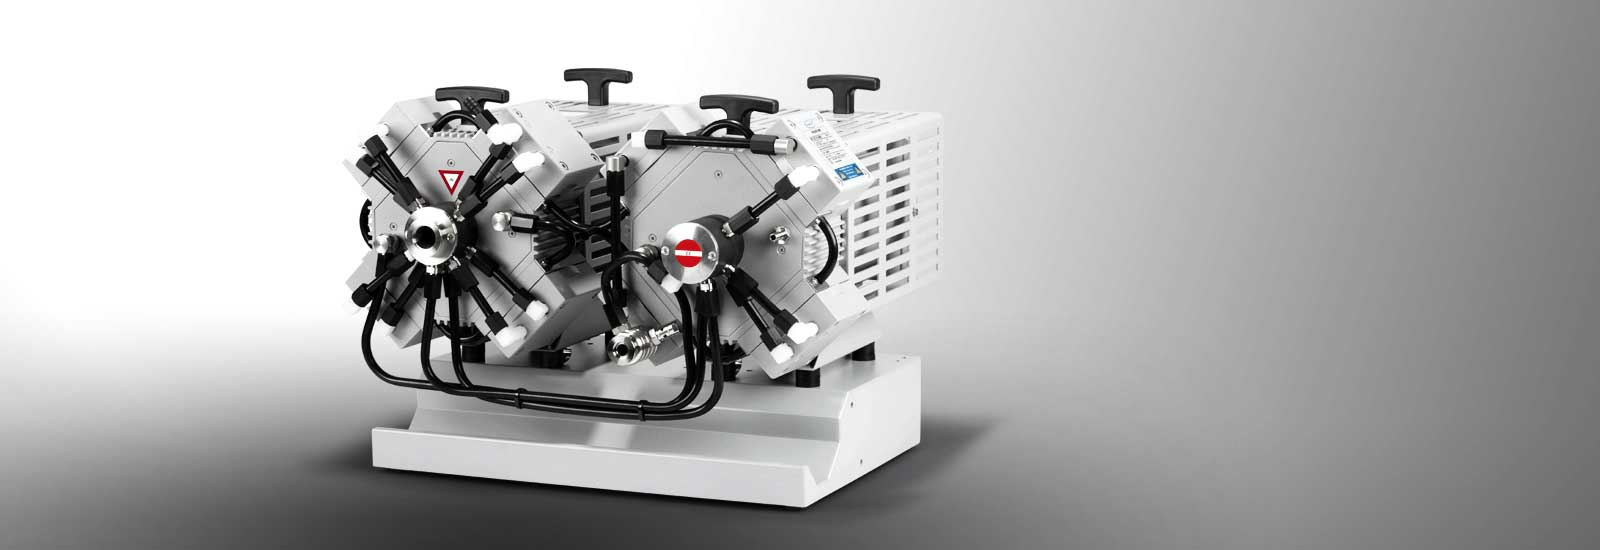 ATEX VARIO® - Vacuum pumps with variable motor speed for EX zones...